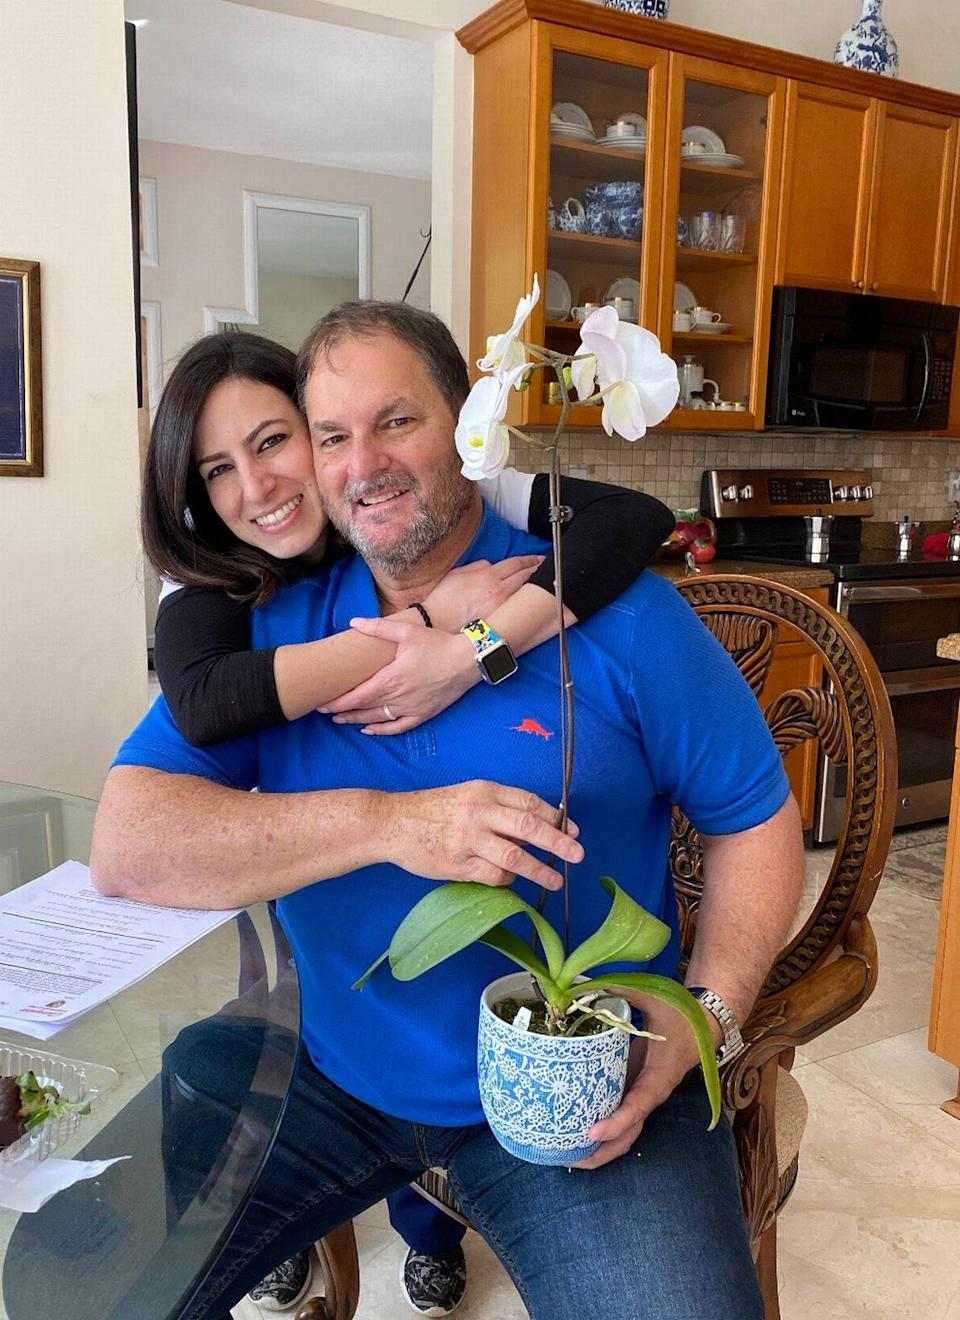 Dr. Carlos Vallejo, an internist in South Florida, poses with his daughter Gisselle Vallejo. Carlos Vallejo died from complications stemming from COVID-19 on Aug. 1, 2020.